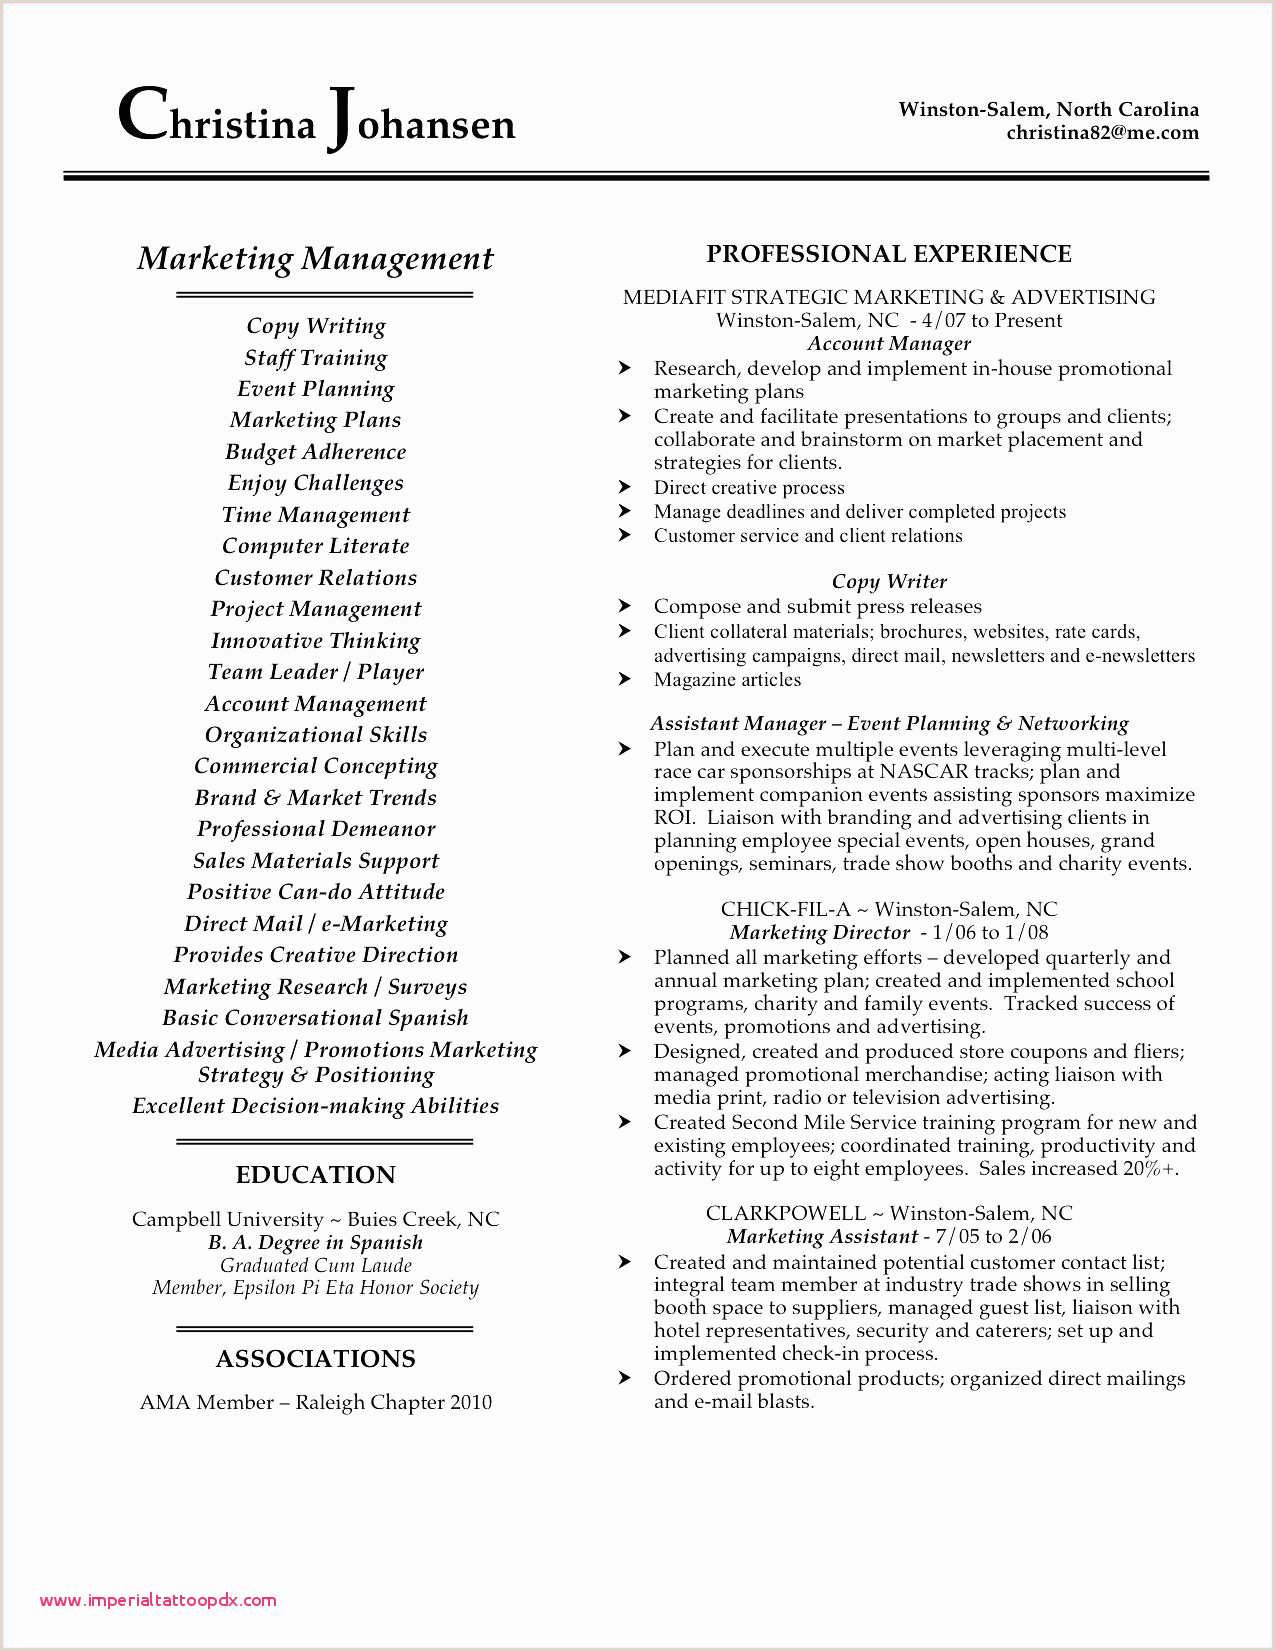 Copy Editor Resume Resume Leadership Examples Free Team Leader Resume American